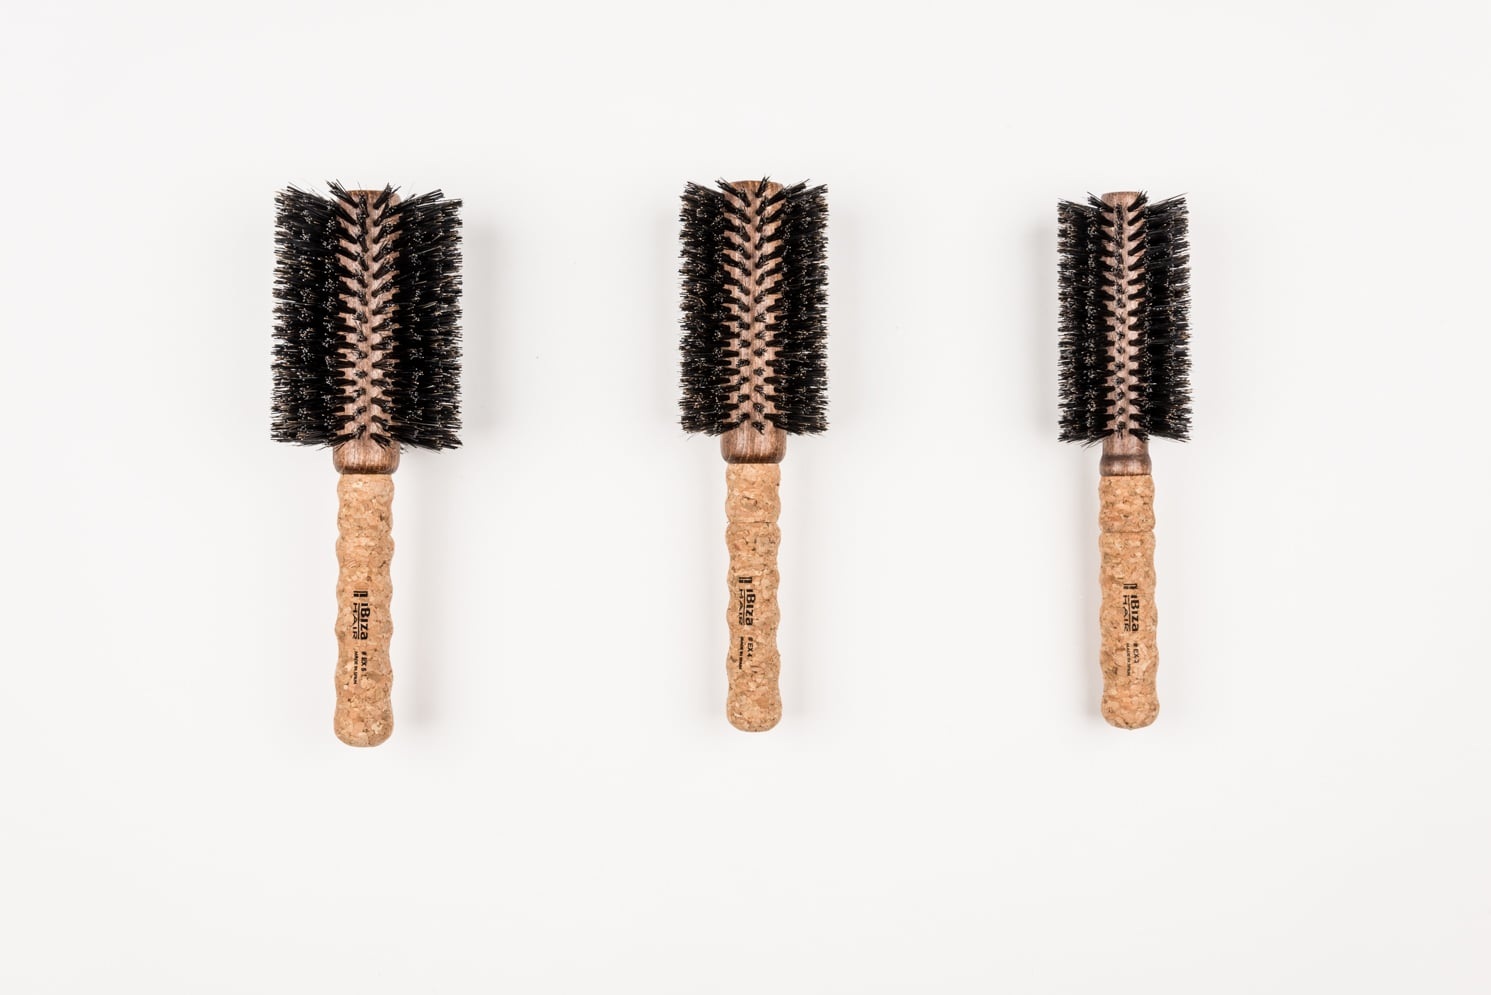 ROCK MAMA NYC LIFESTYLE BLOG - HOW TO PICK THE RIGHT BRUSH - ROUND BRUSH